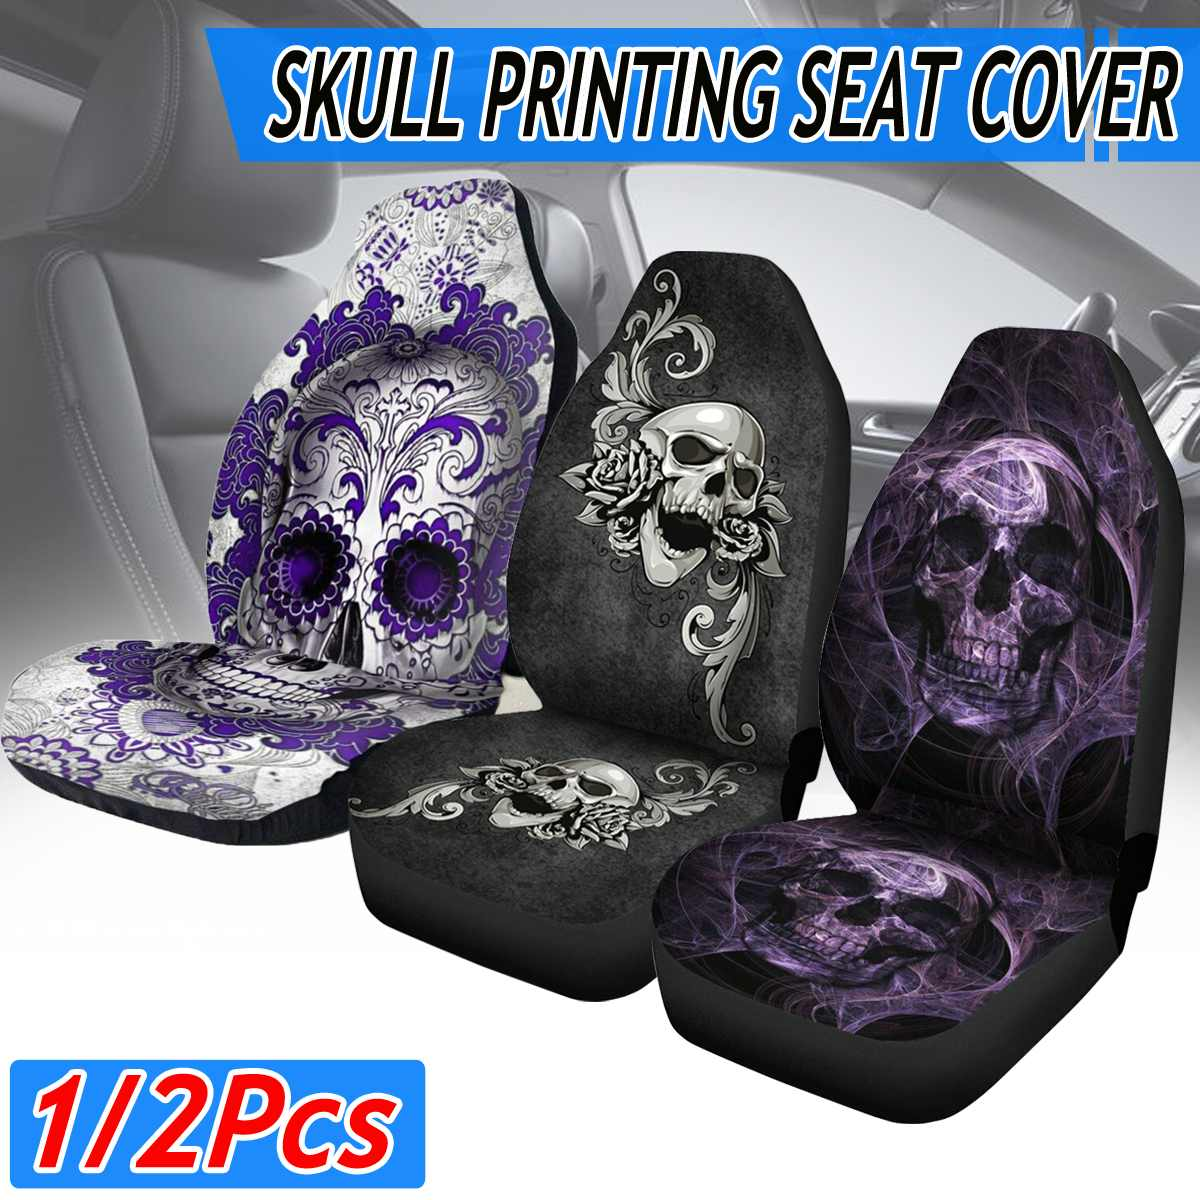 3D Skull Print Front Car Seat Cover Universal Car Seat Protector Seat Cushion Full Cover For Most Car for SUV Car Accessories